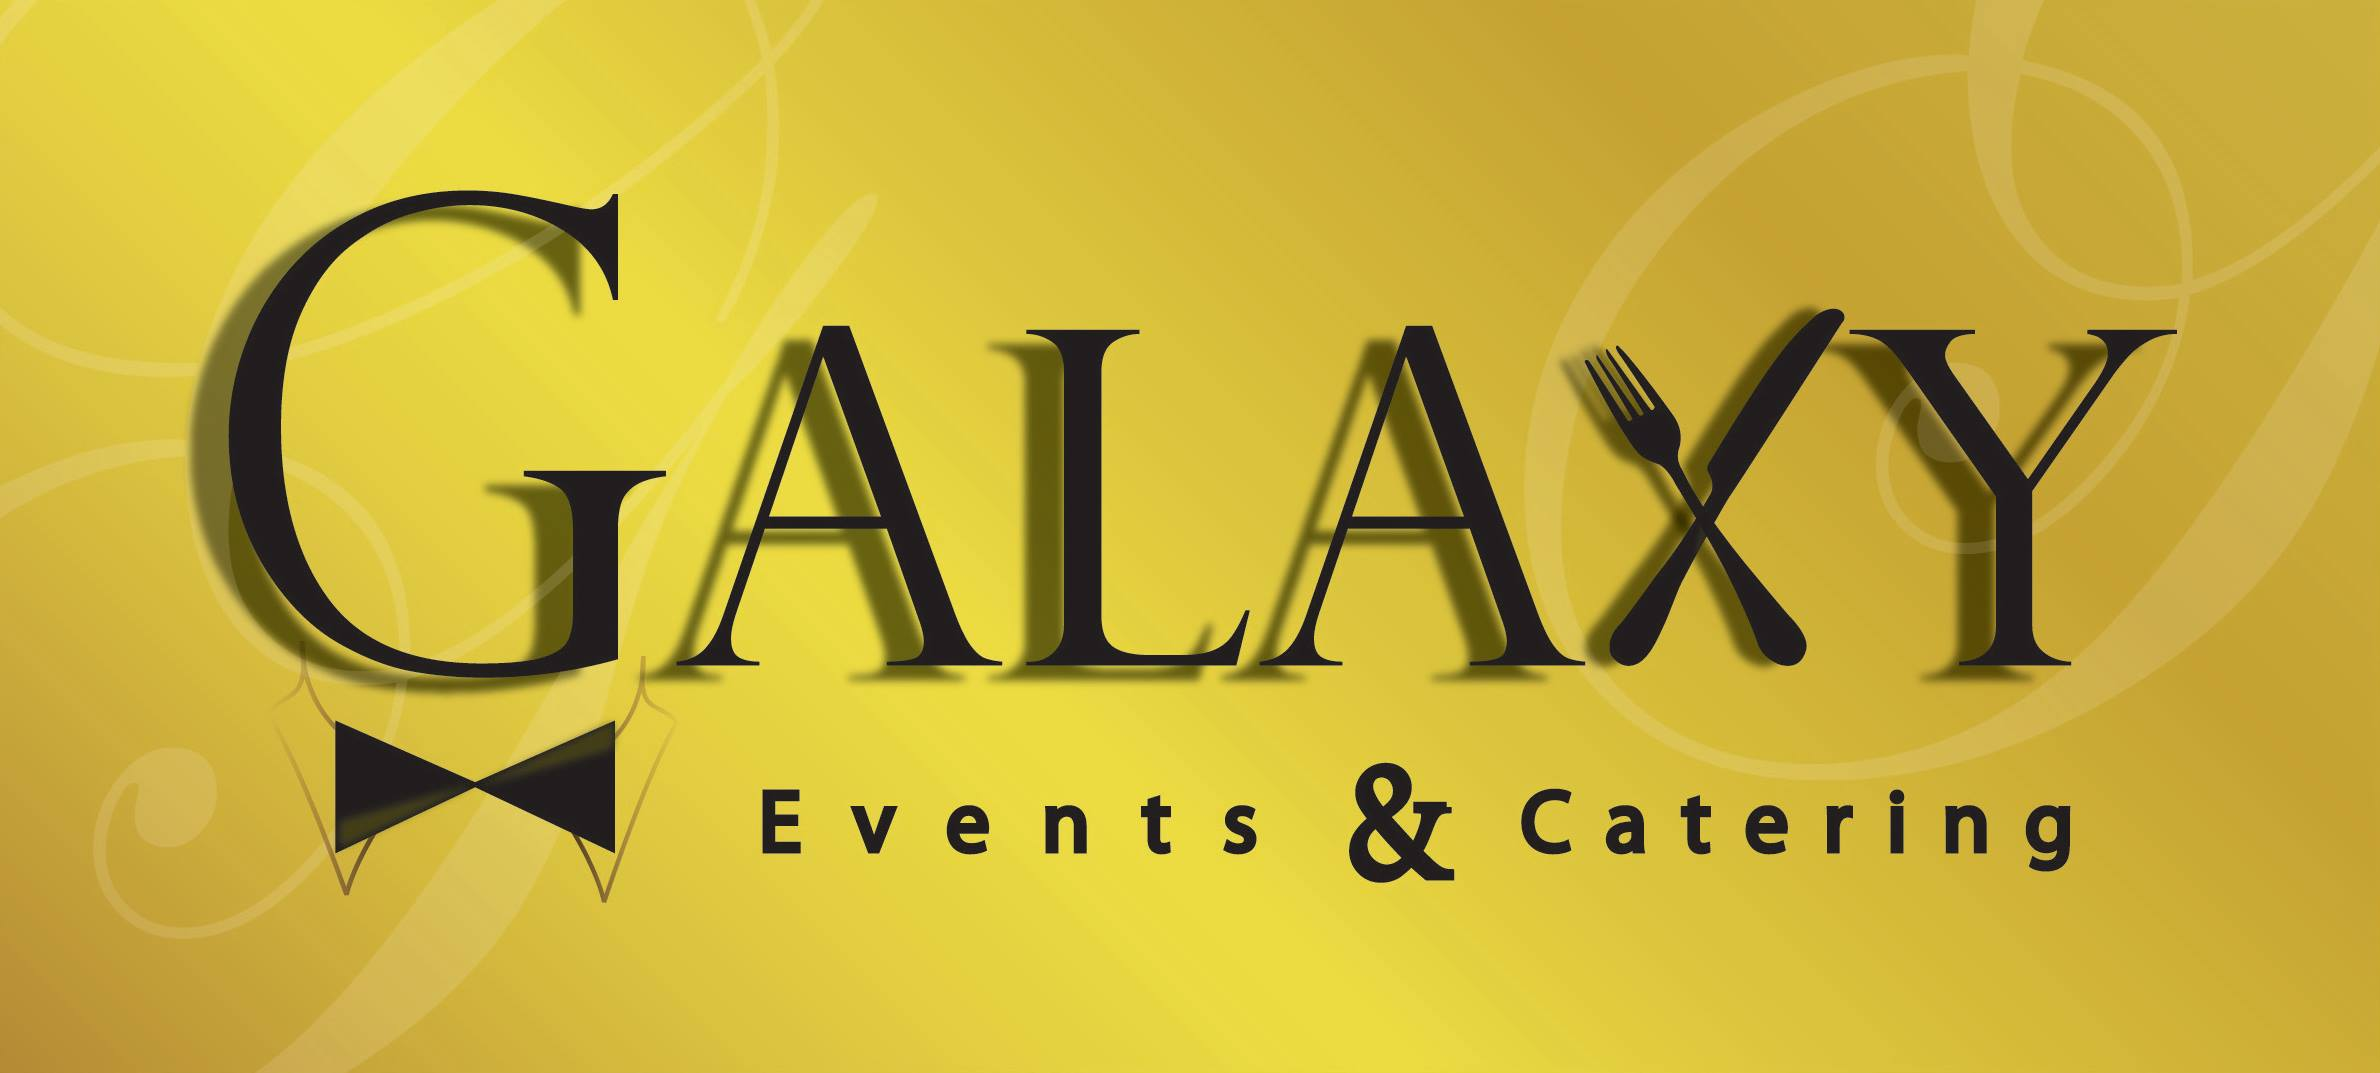 Galaxy Catering